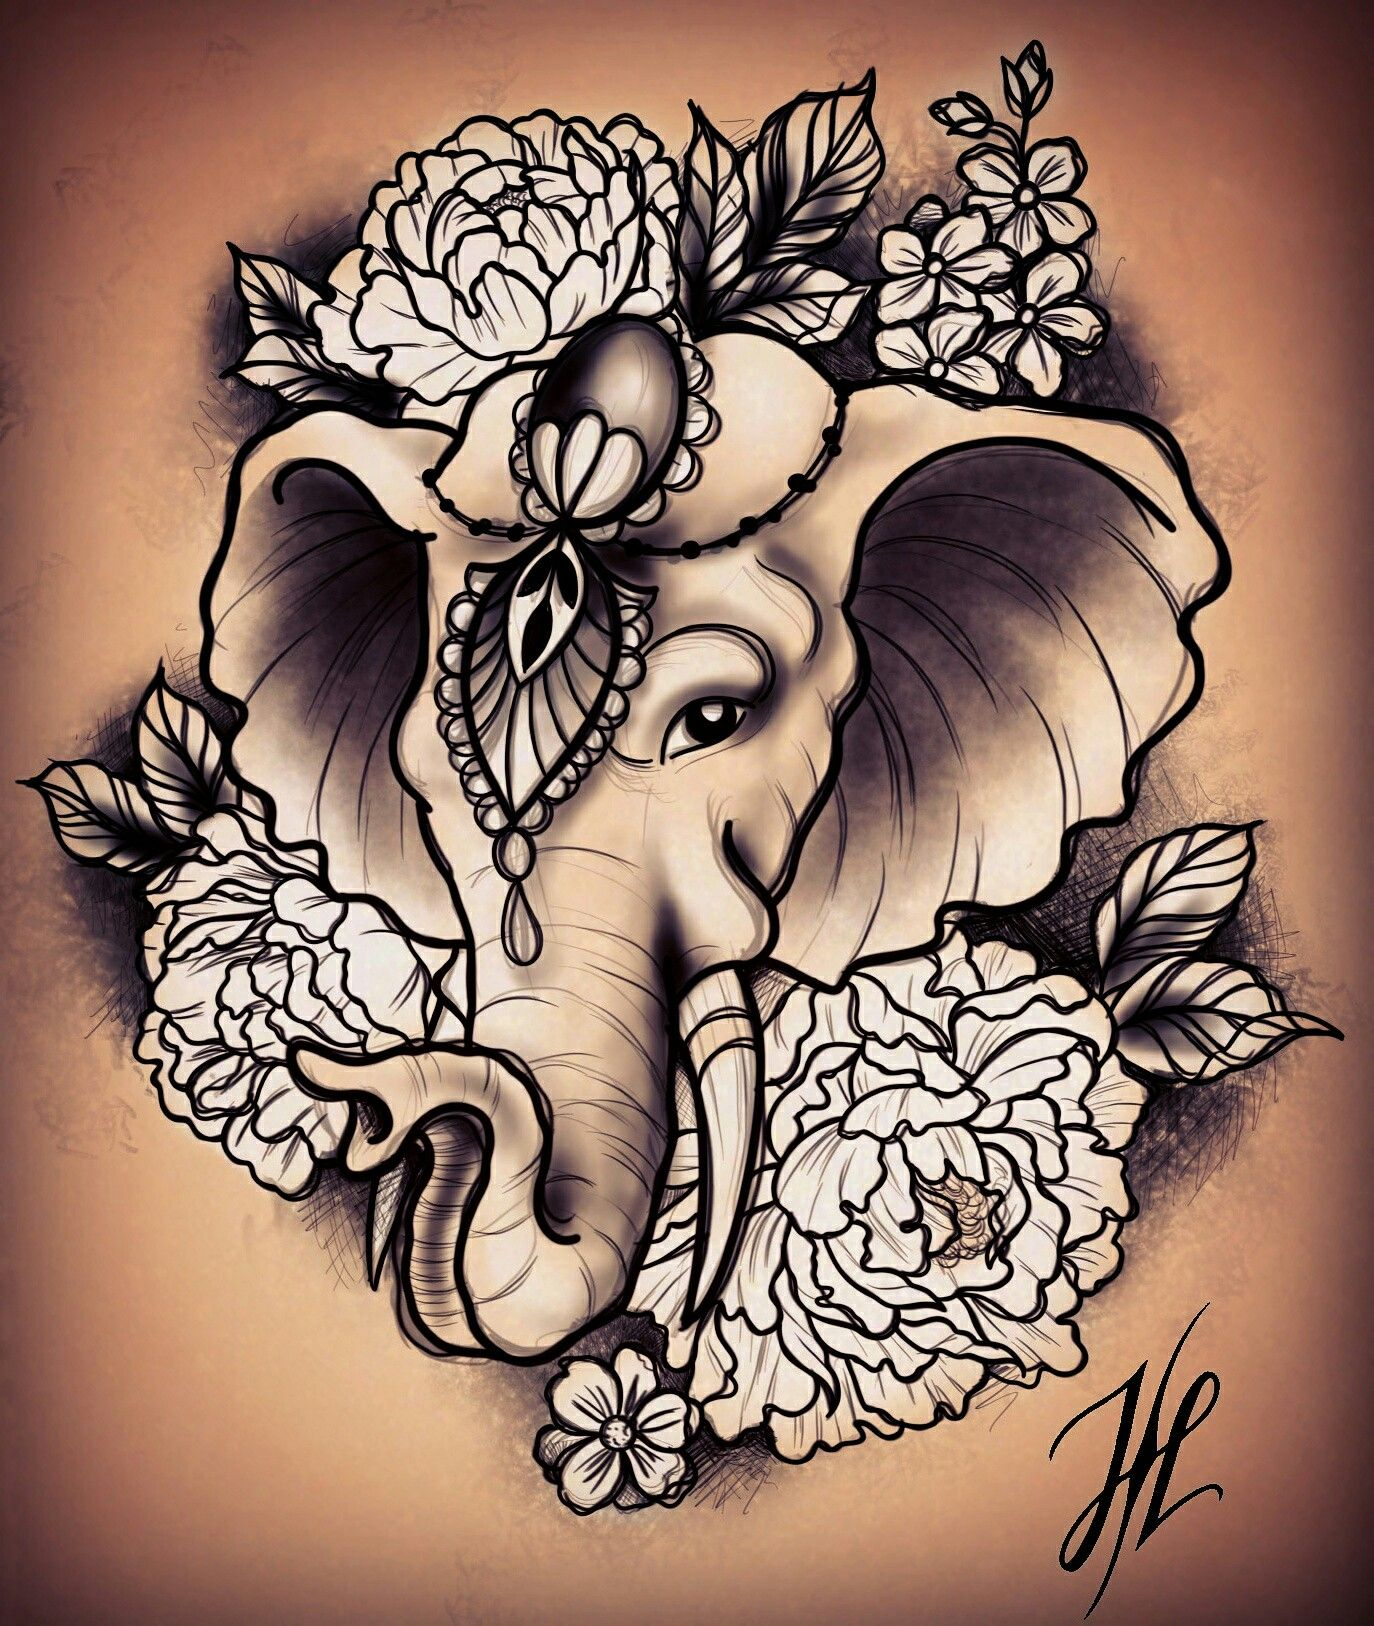 The tattoo I would get for my mom. Elephant tattoos